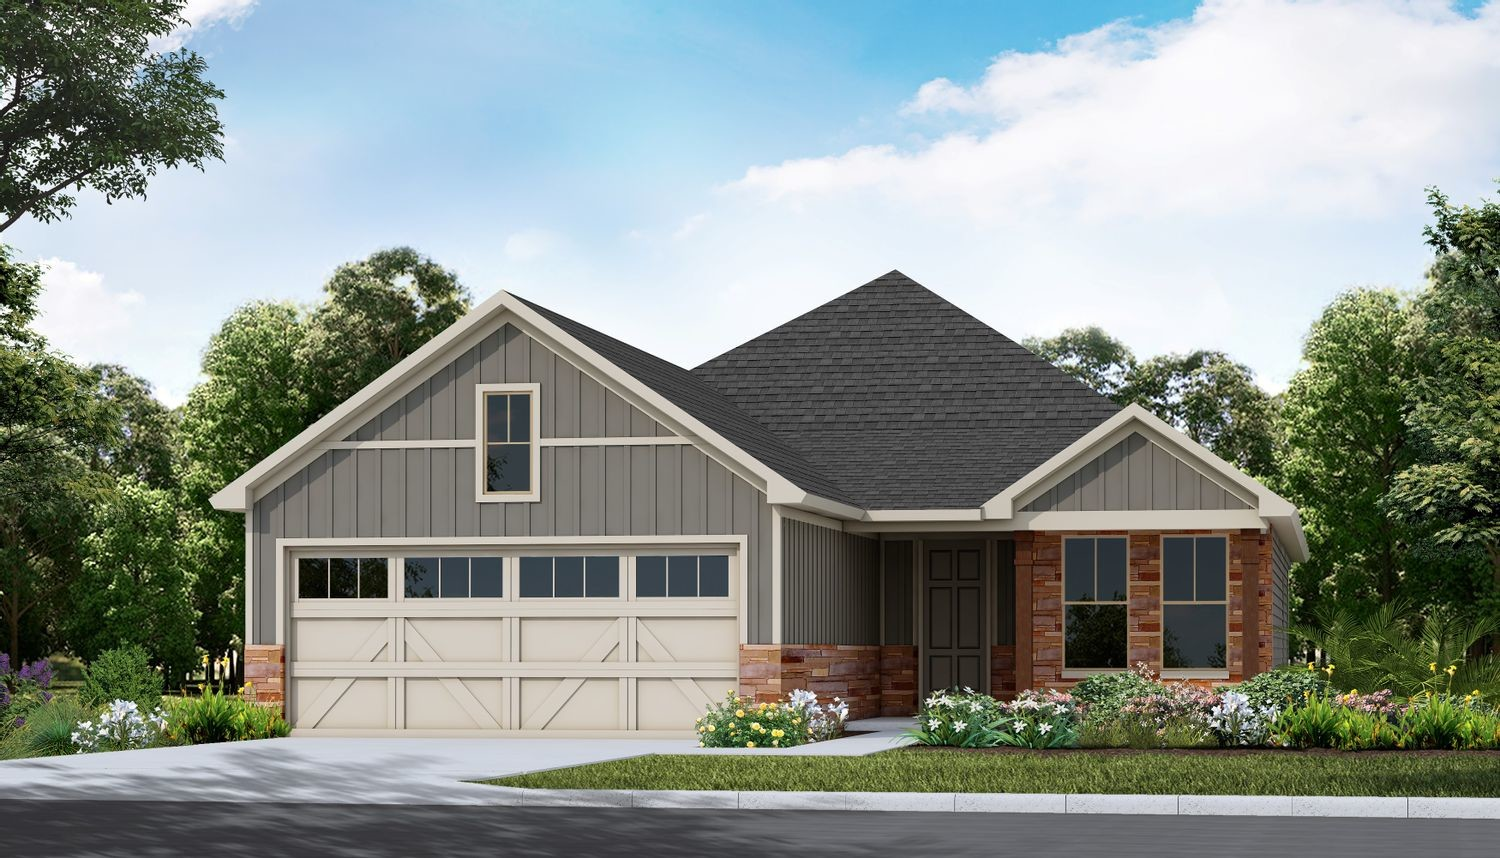 Move In Ready New Home In New Park  A New Home Community Community